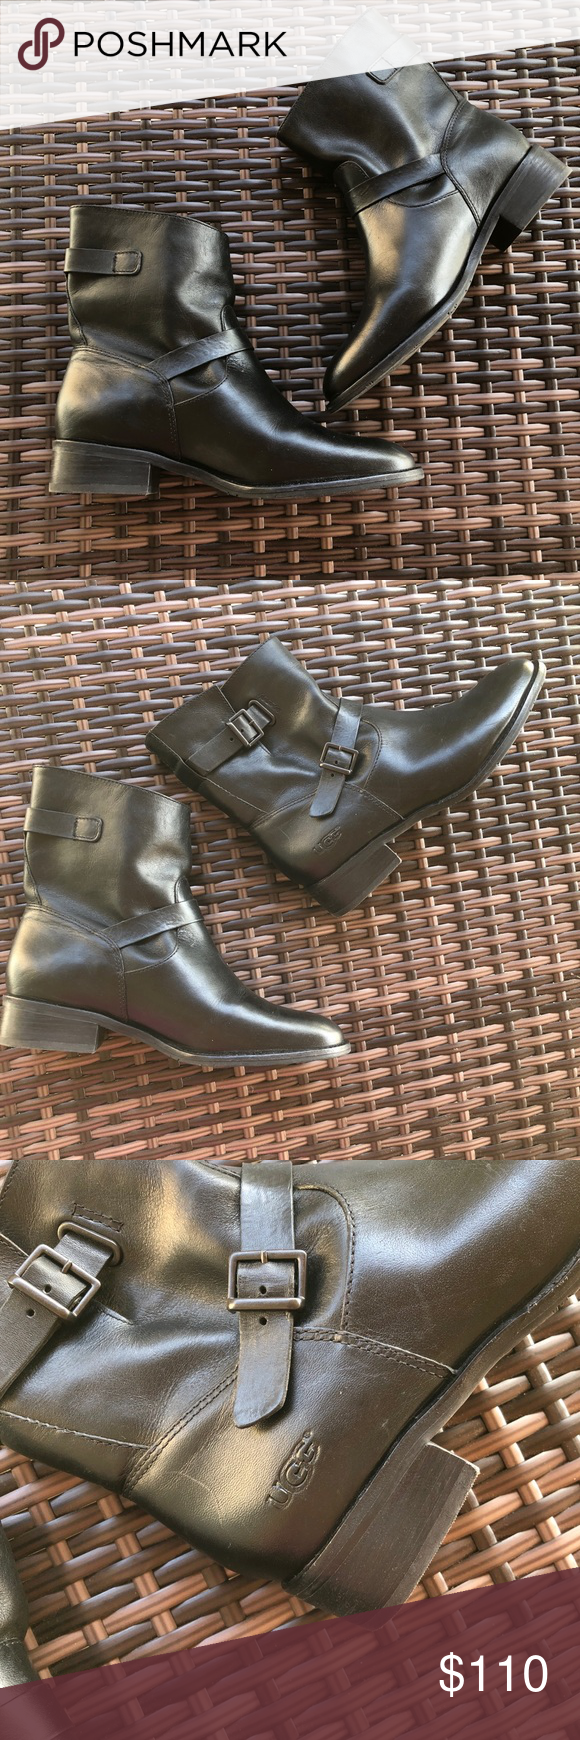 734883bf66a New Ugg Fletcher black leather boot Brand new without original box.A ...